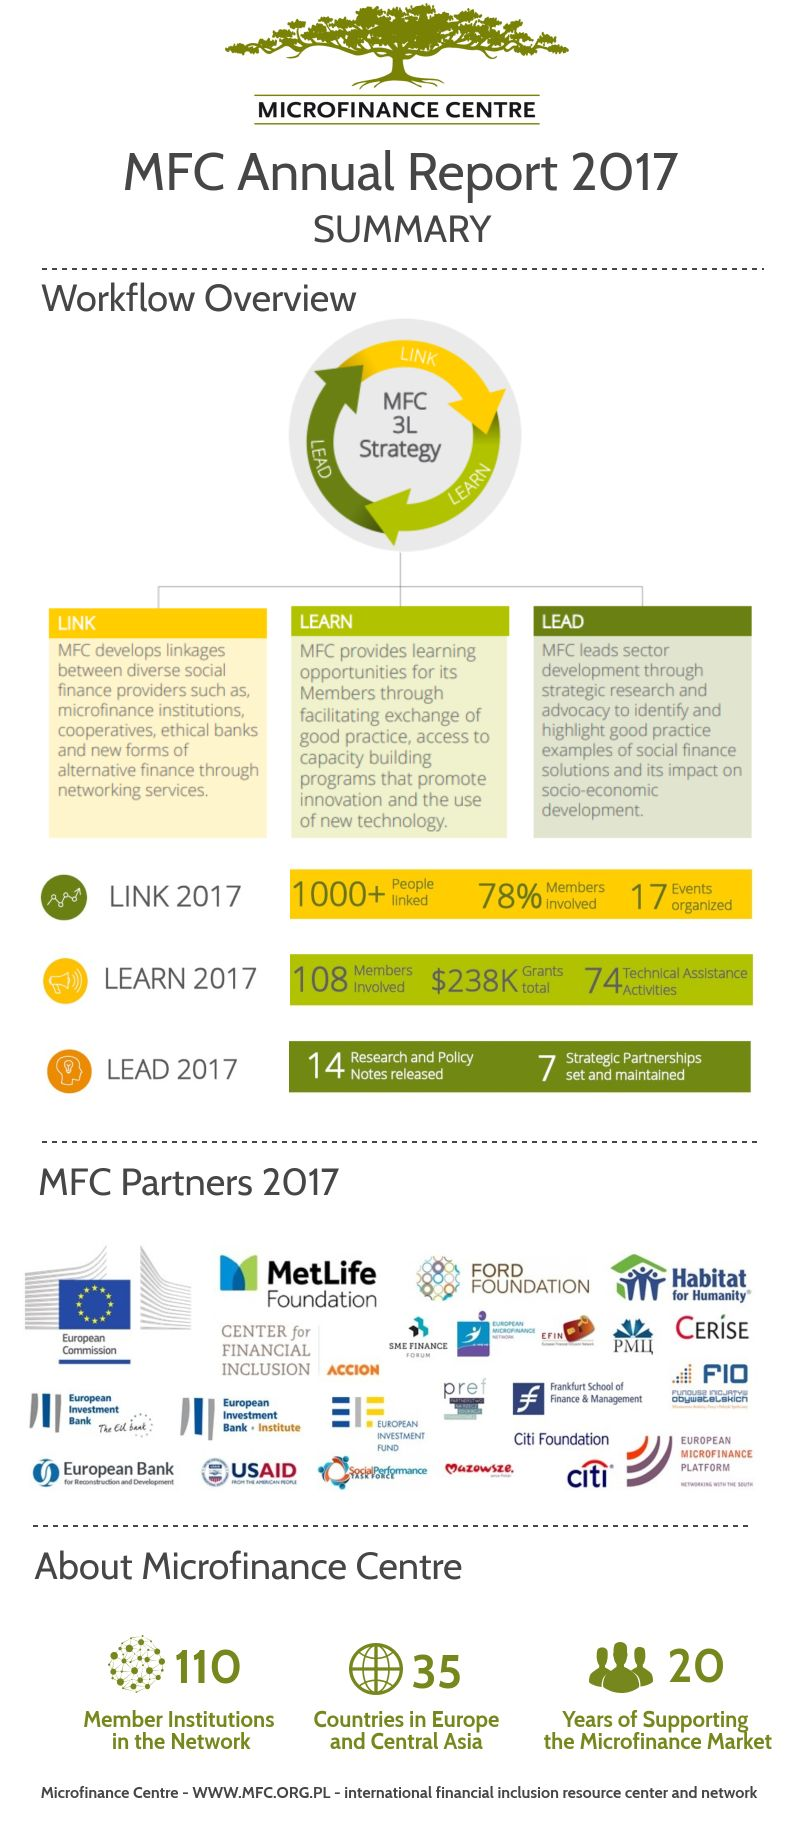 MFC Annual Report 2017 summary infographic